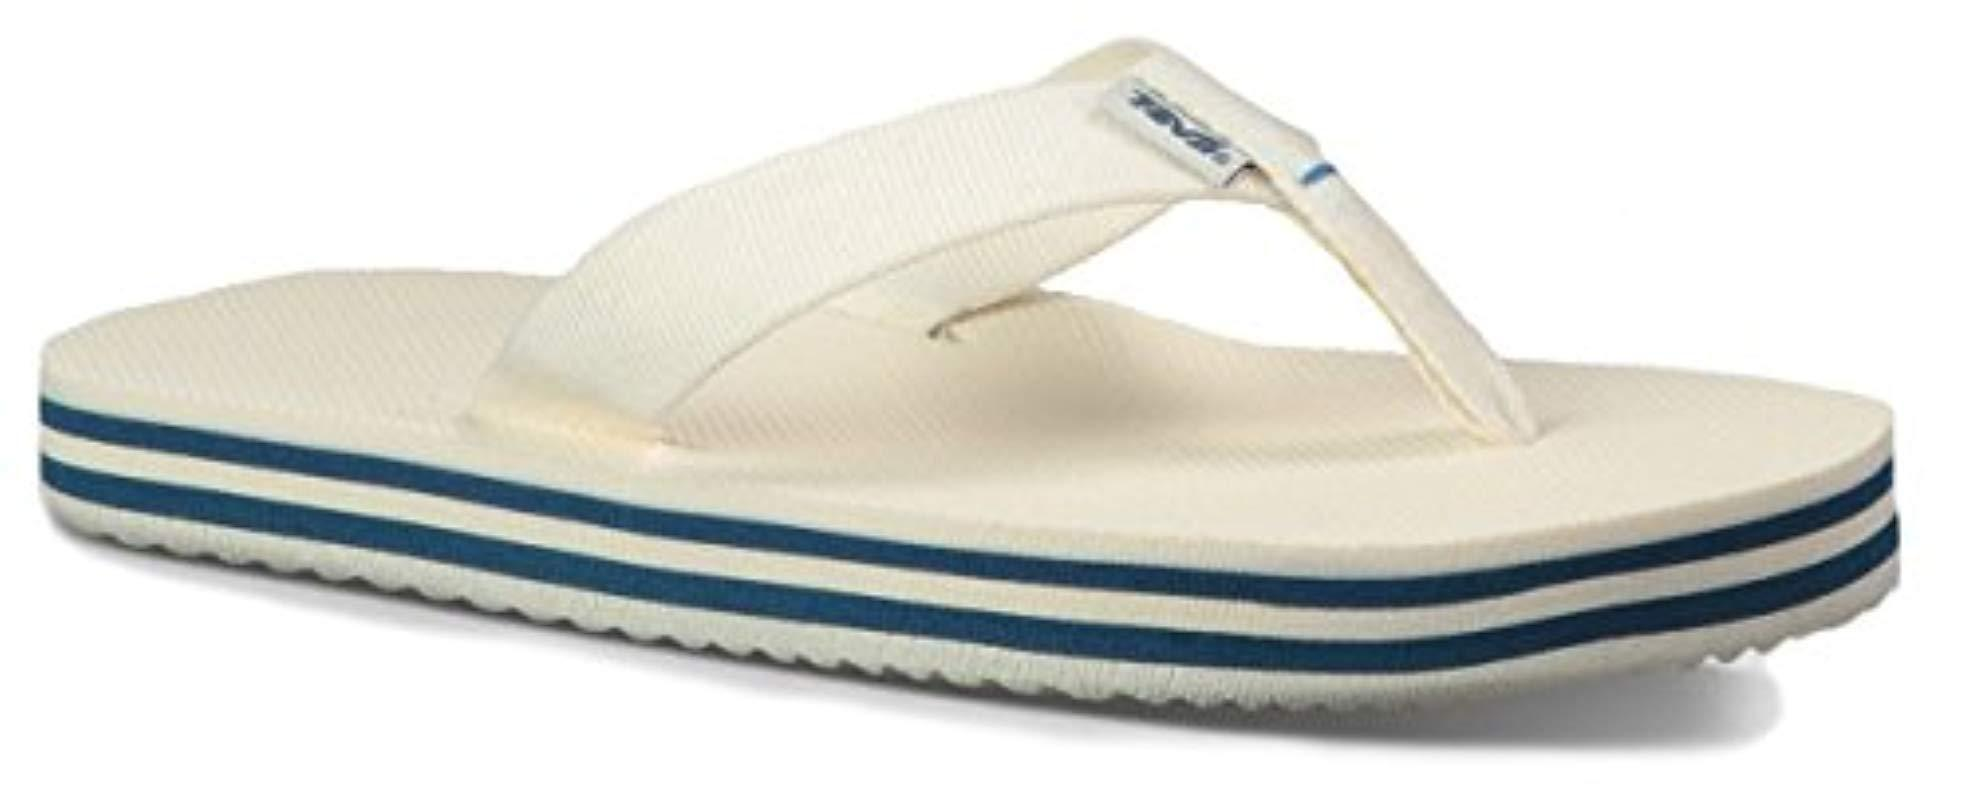 262dac5c2ba7 Teva. Women s White Deckers Flip-flop.  22 From Amazon Prime